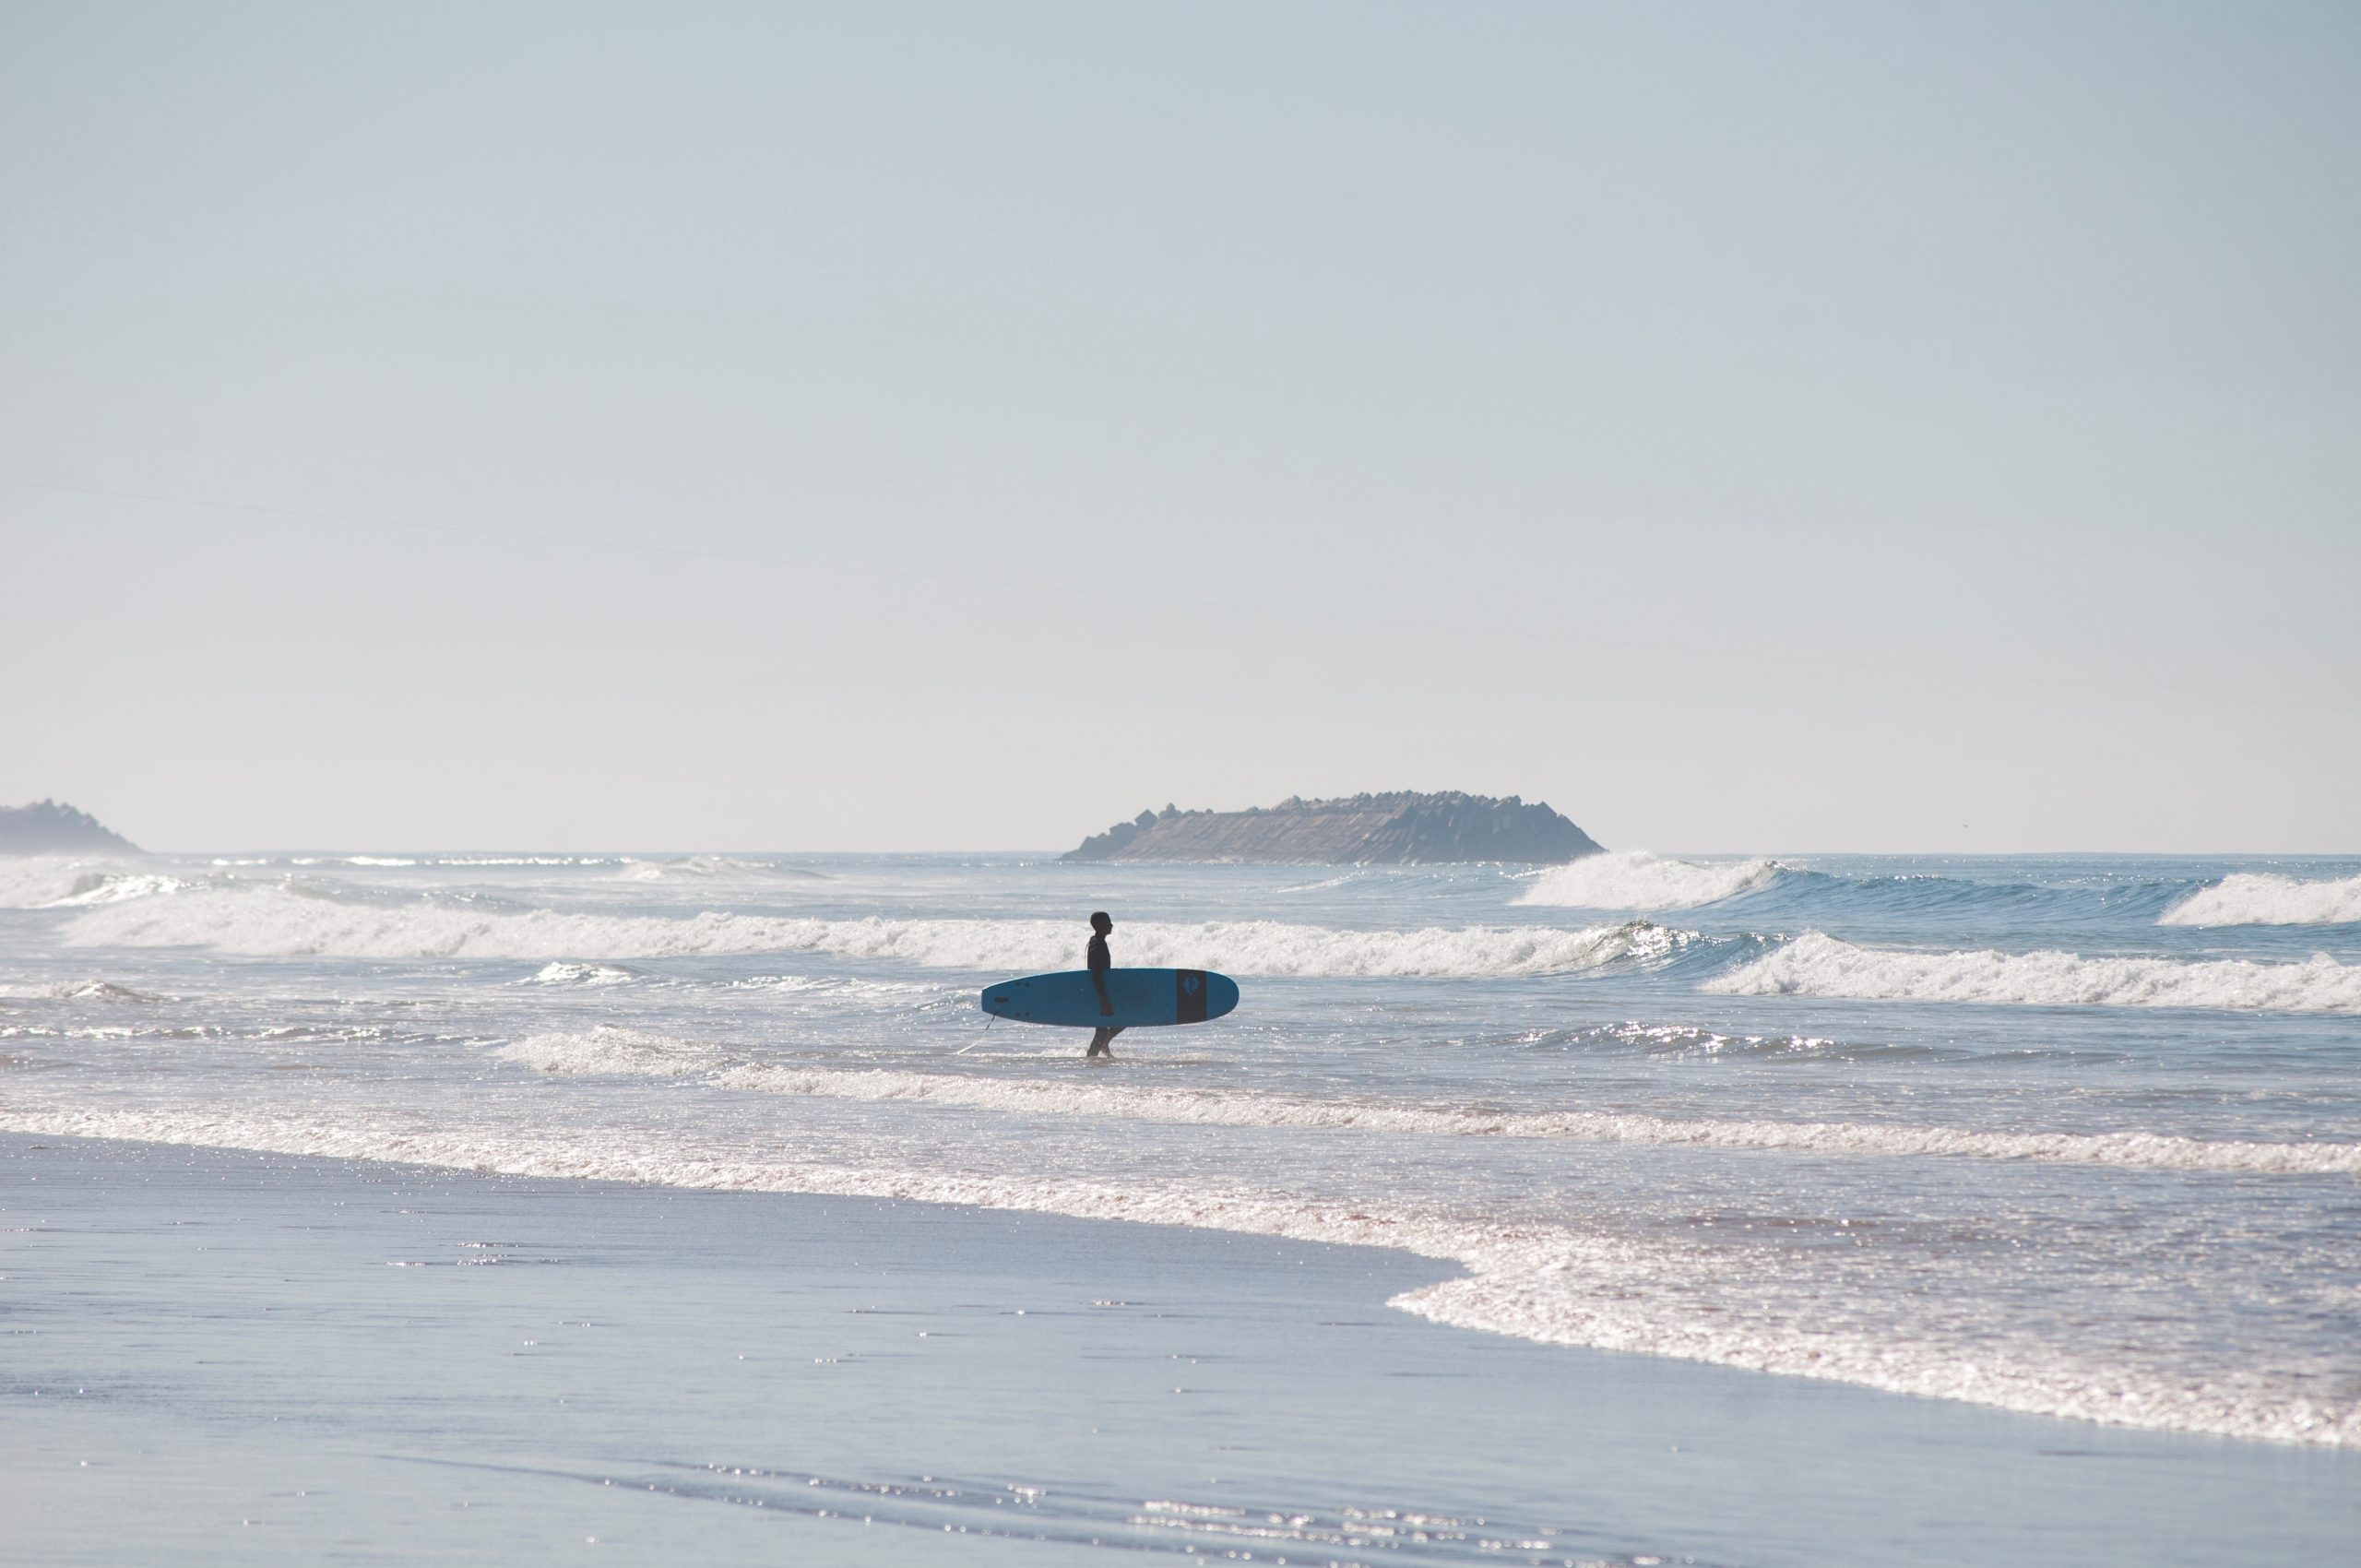 gallery image for Surf Lessons on the Atlantic & Mediterranean Coast